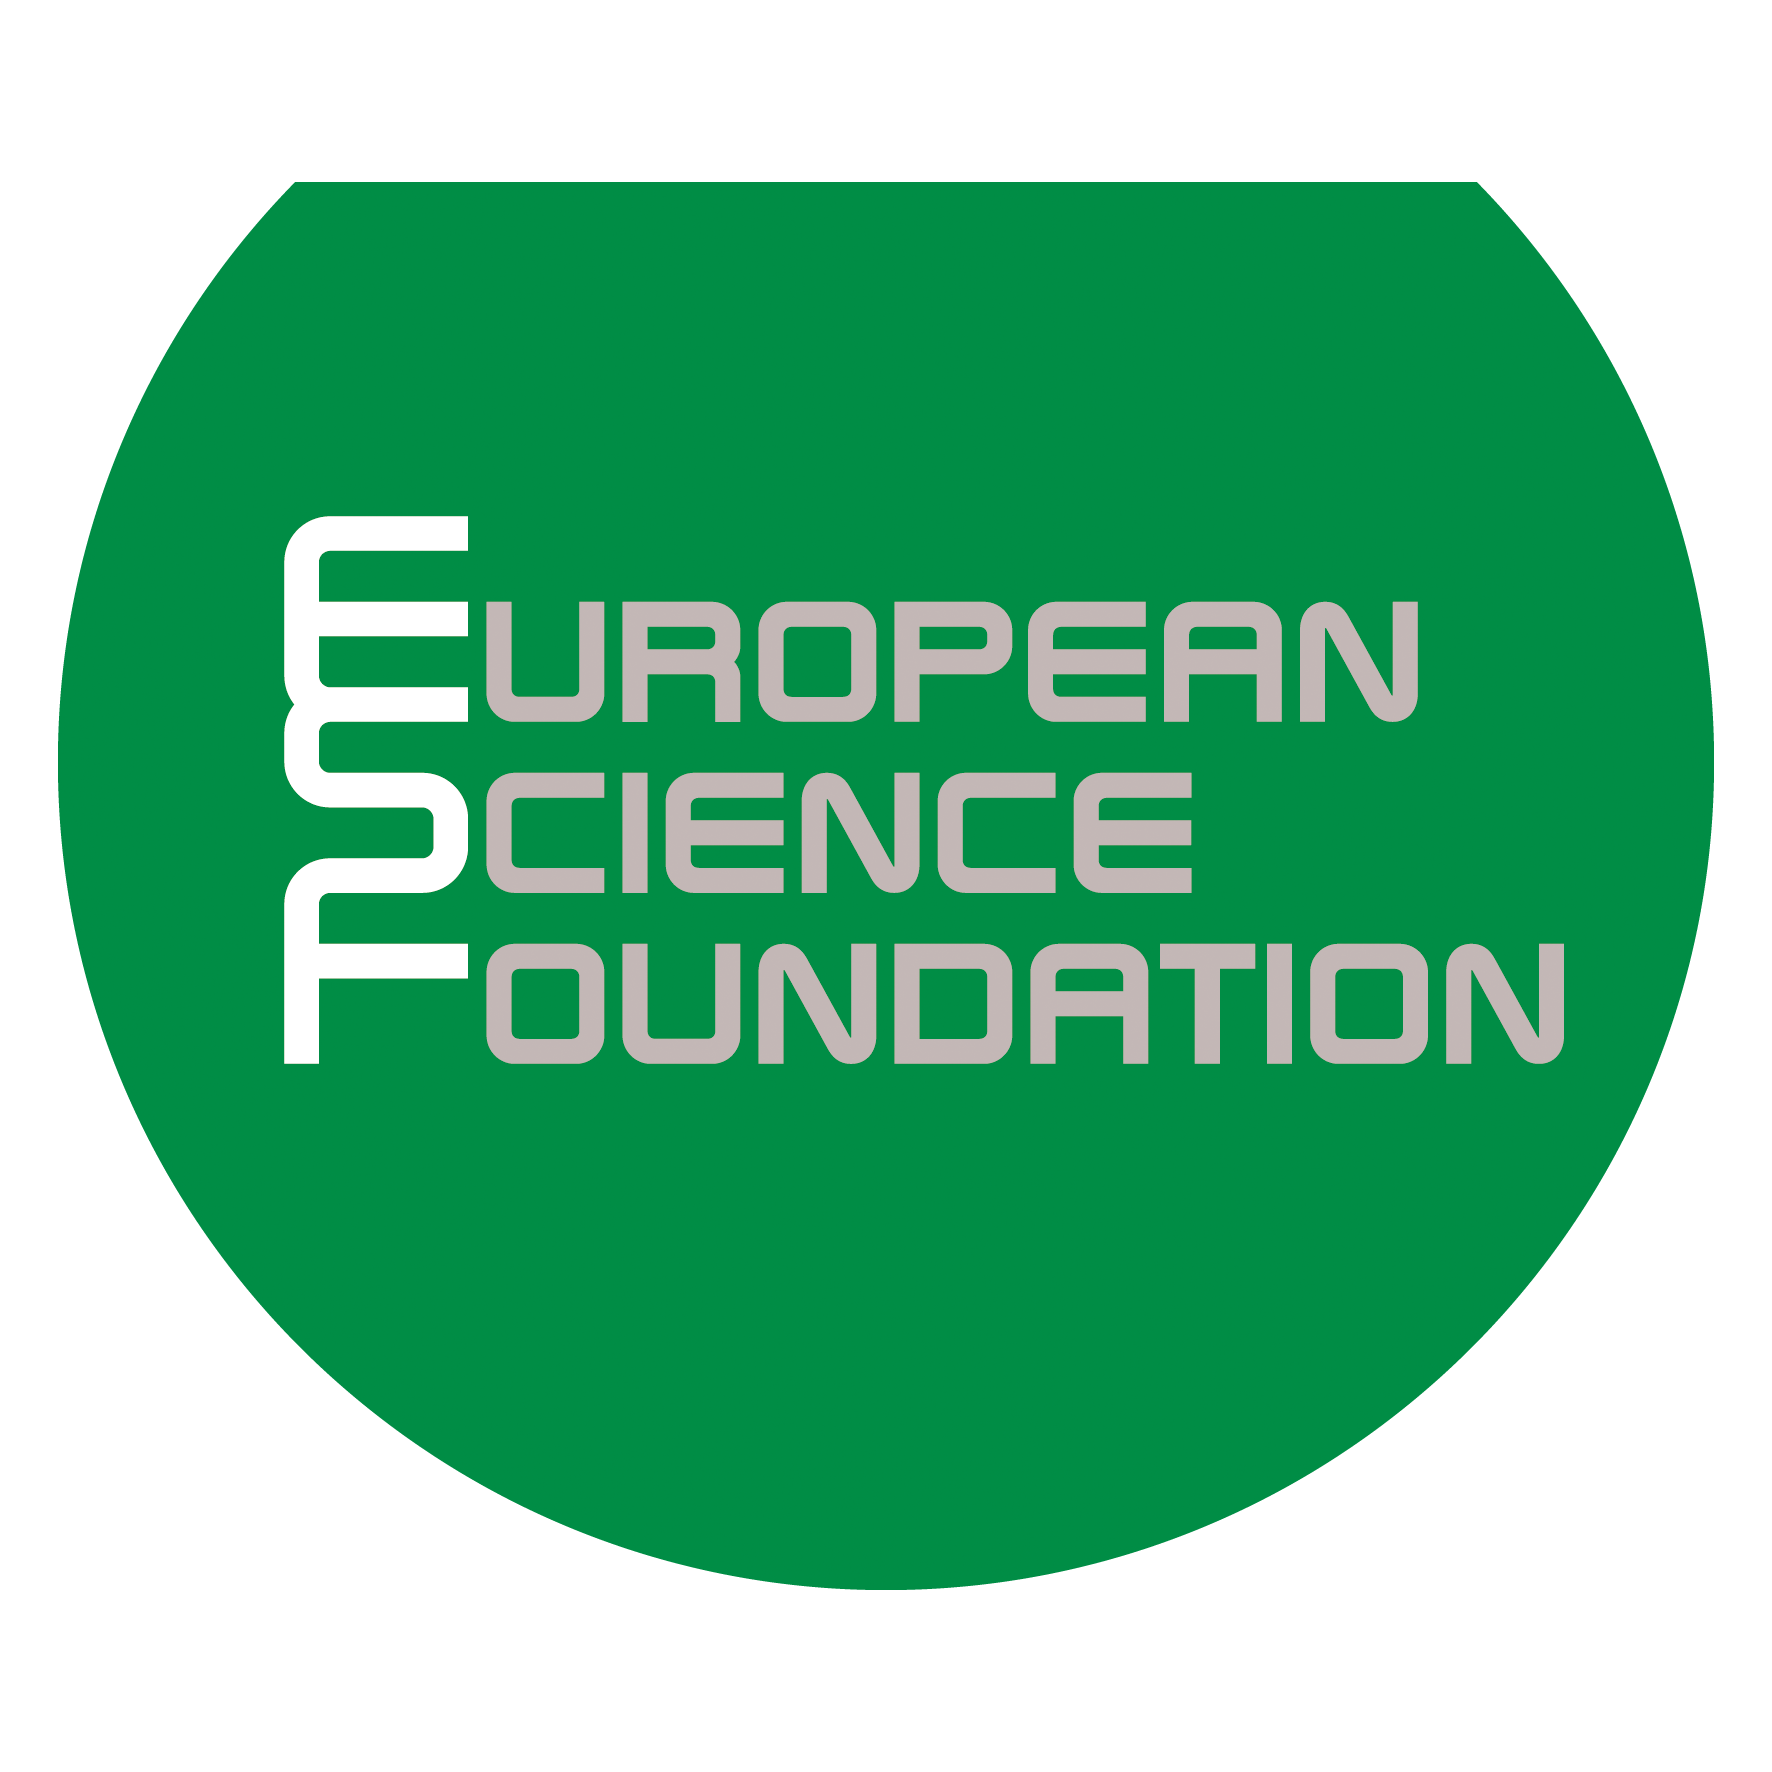 Logo of the European Science Foundation